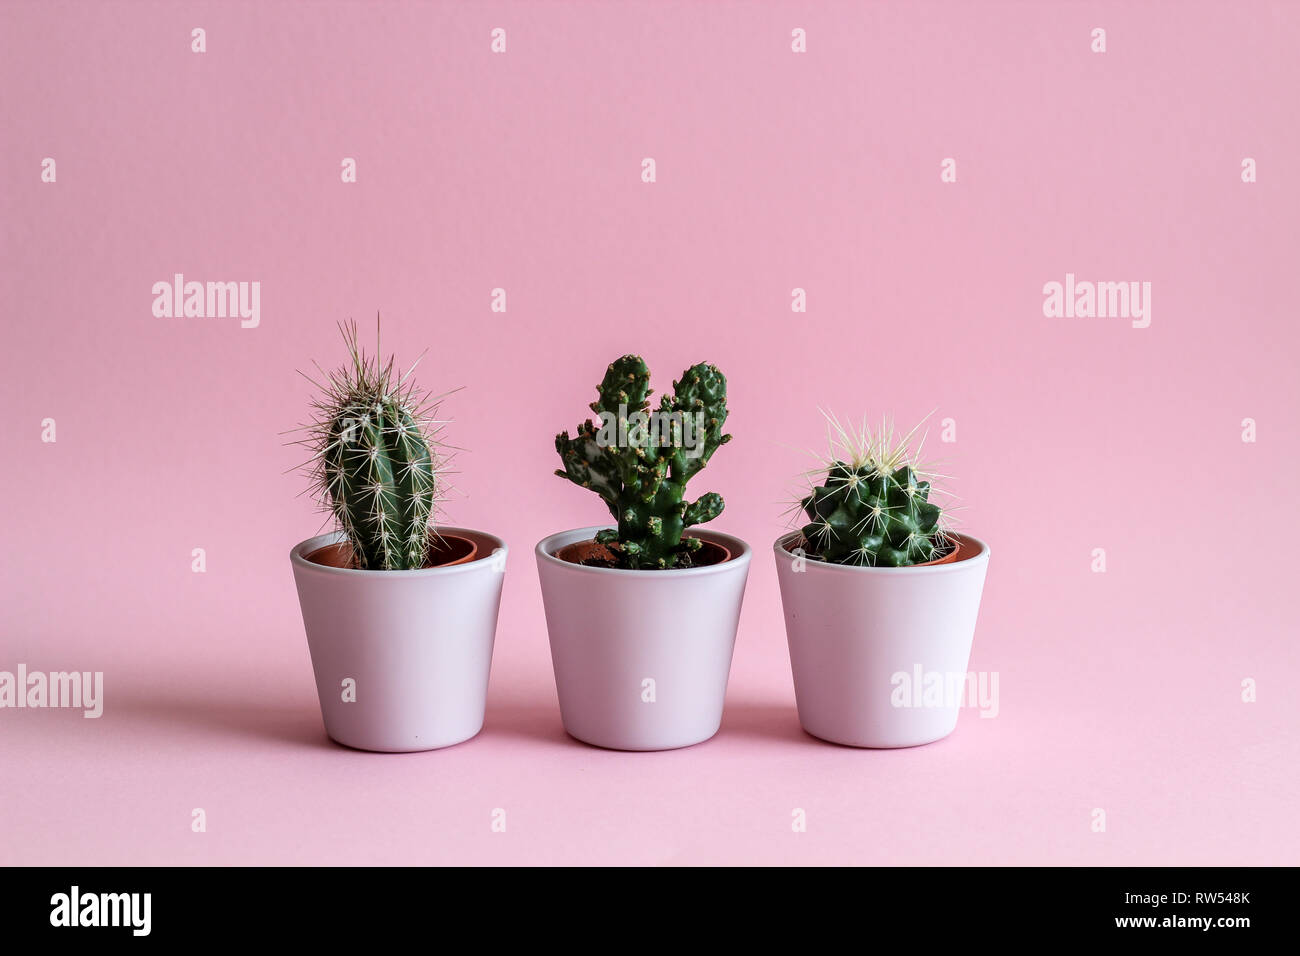 Three tiny cacti in pink pots on a pink background Stock Photo